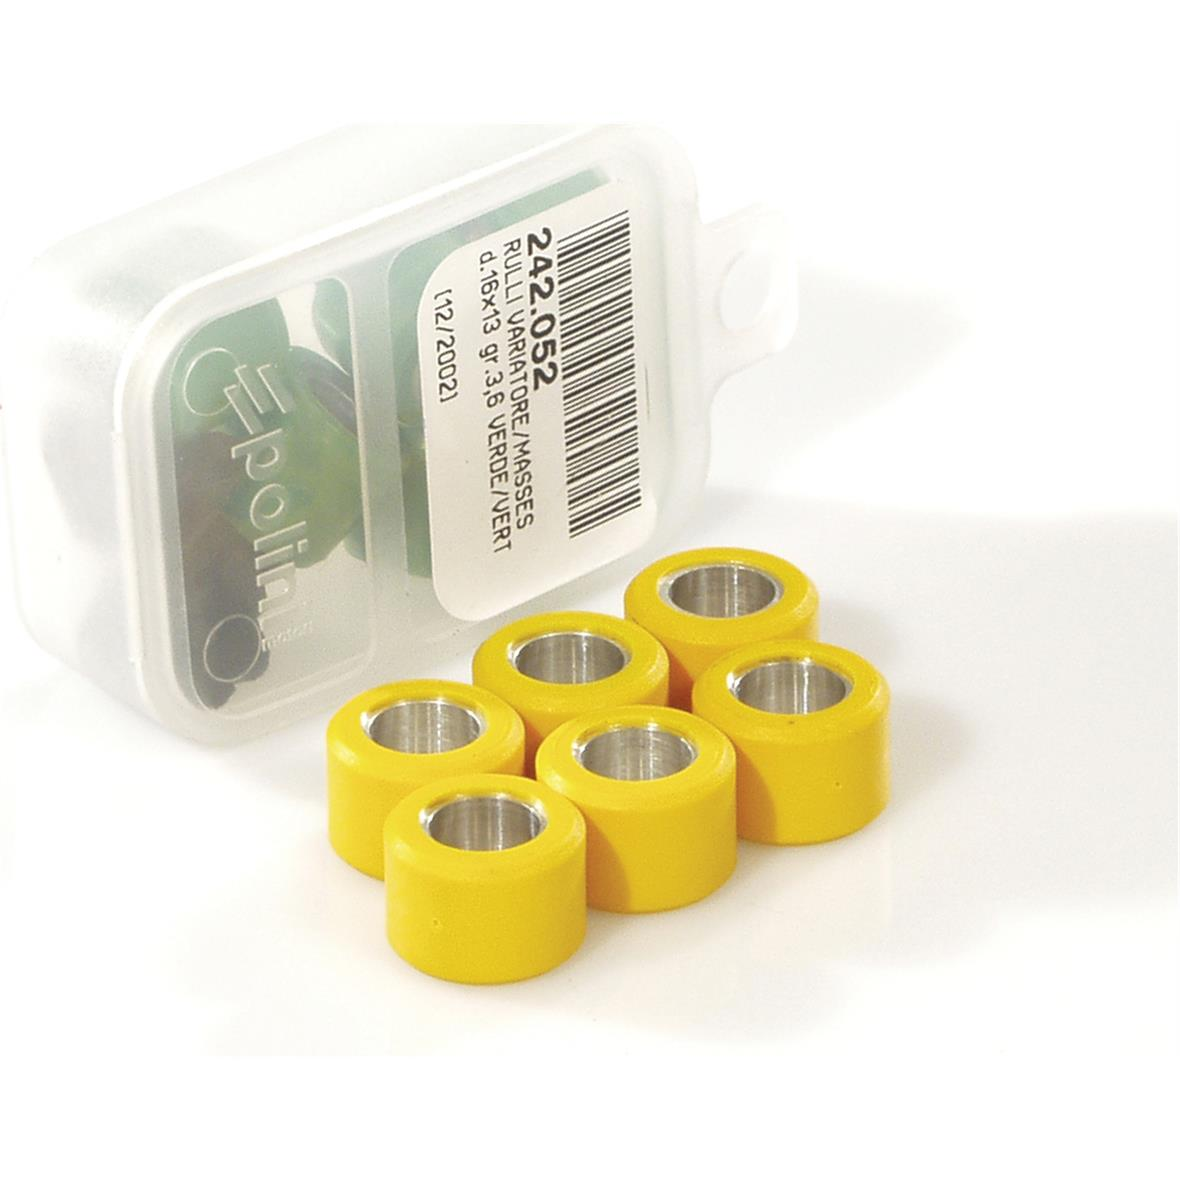 Product Image for 'Variator Rollers POLINI 23x18 mm 24,3gTitle'